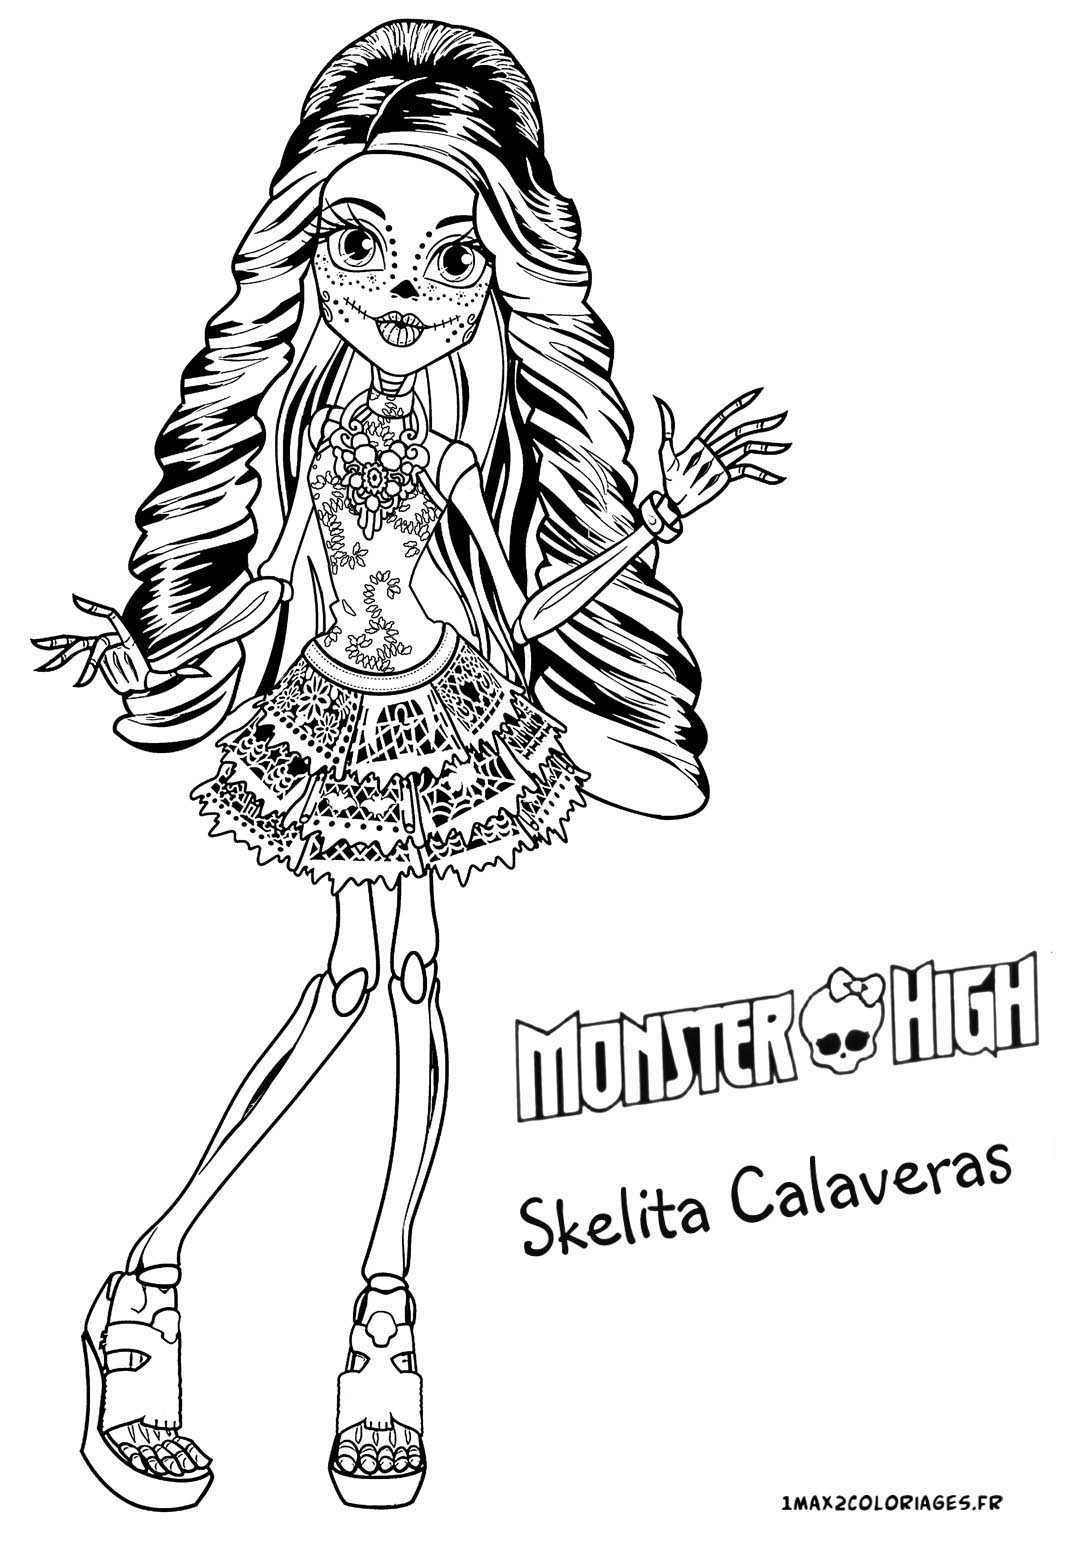 Coloriages monster high coloriage monster high - Coloriage de monster ...